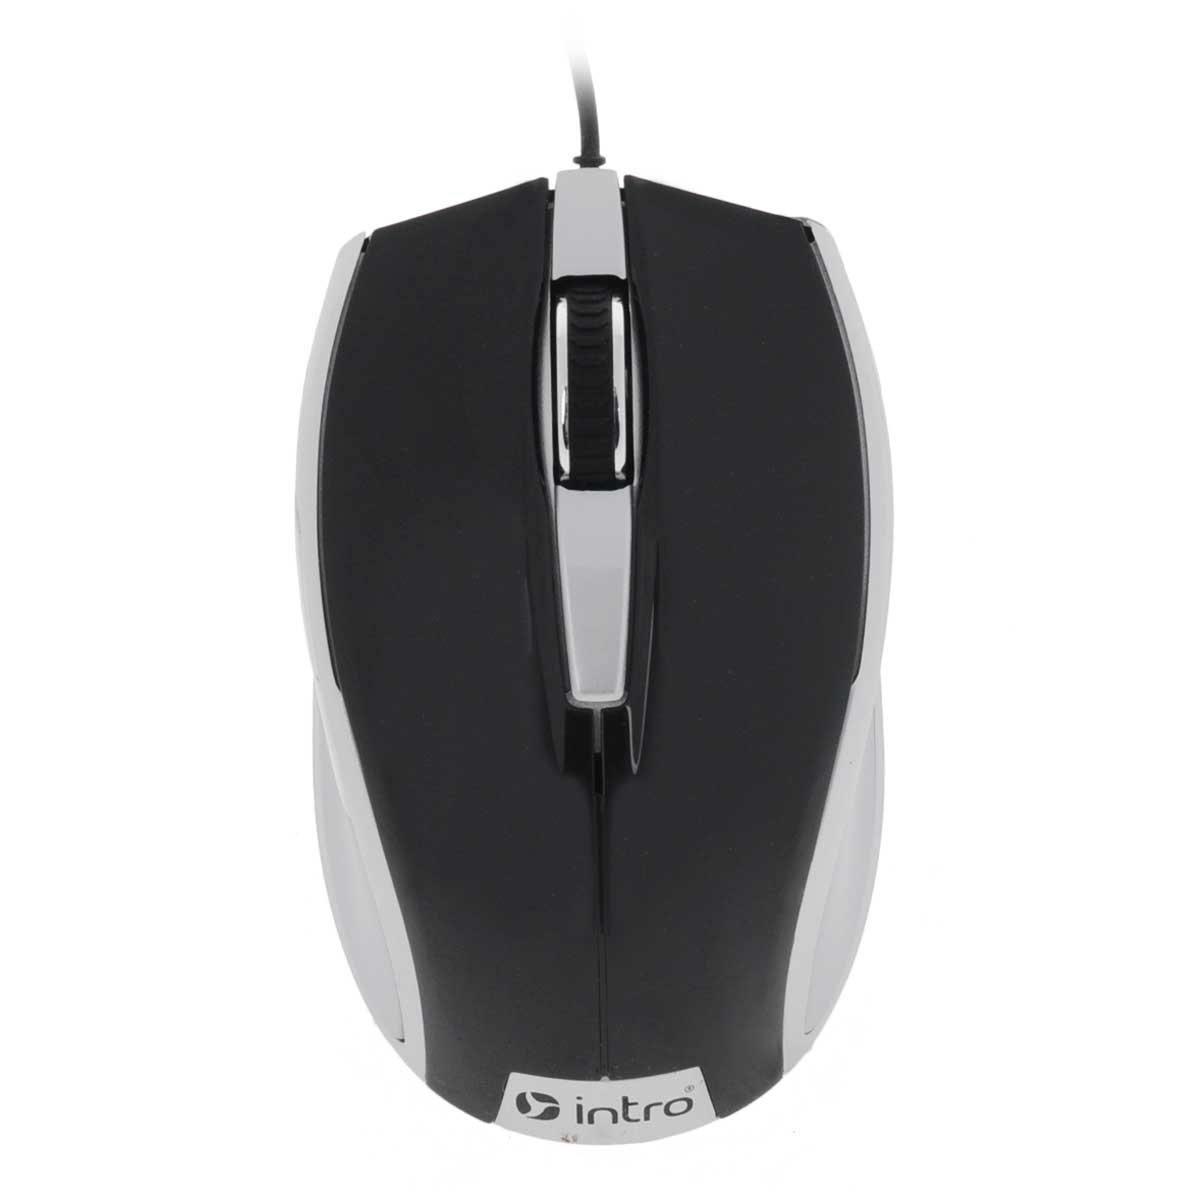 Мышь Intro MU104, Black Silver intro мышь intro mu208g gaming black usb